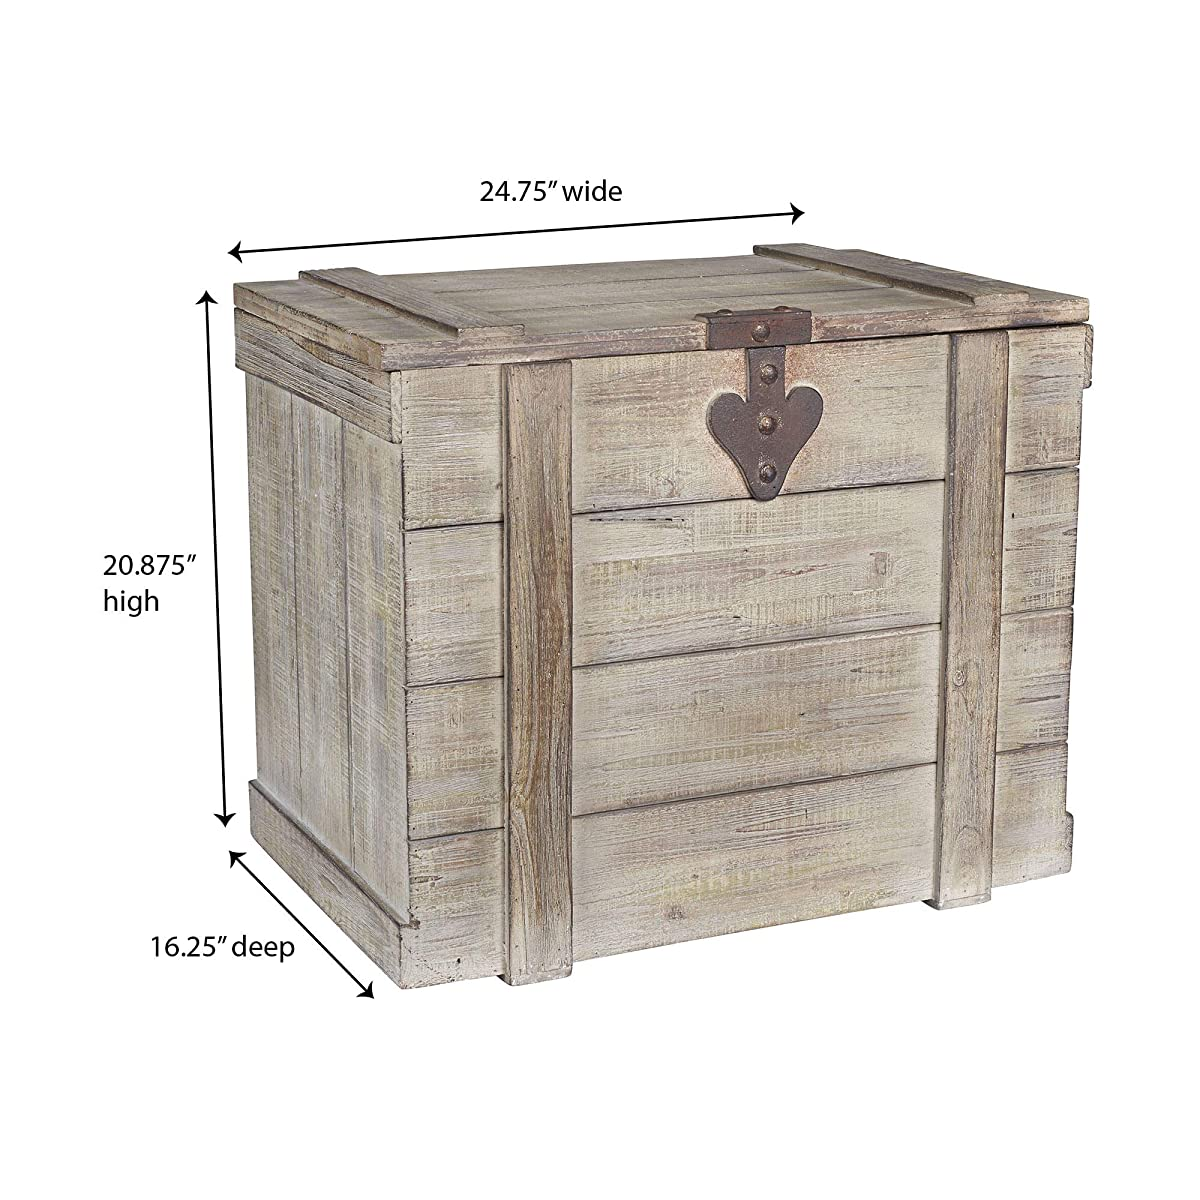 Household Essentials White Washed Rustic Decorative Wooden Trunk, Large